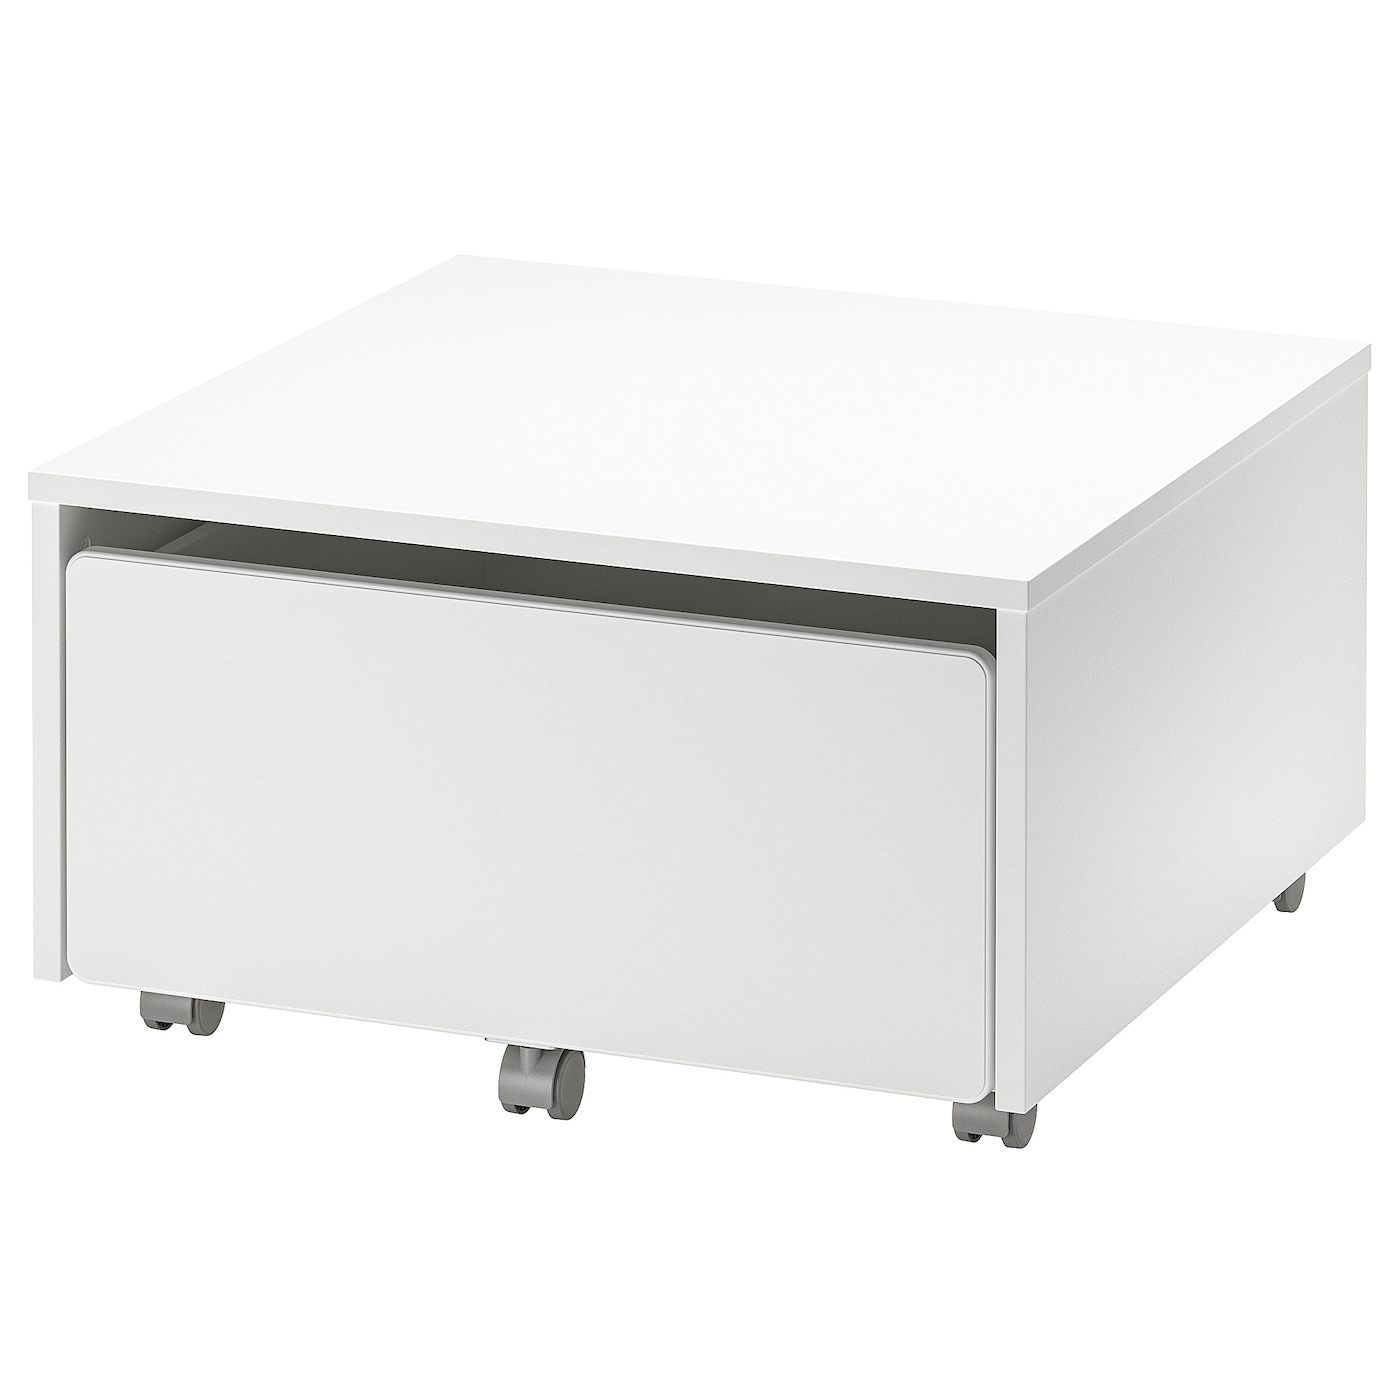 IKEA SLÄKT storage box with castors Easy to move where it is needed thanks to castors.